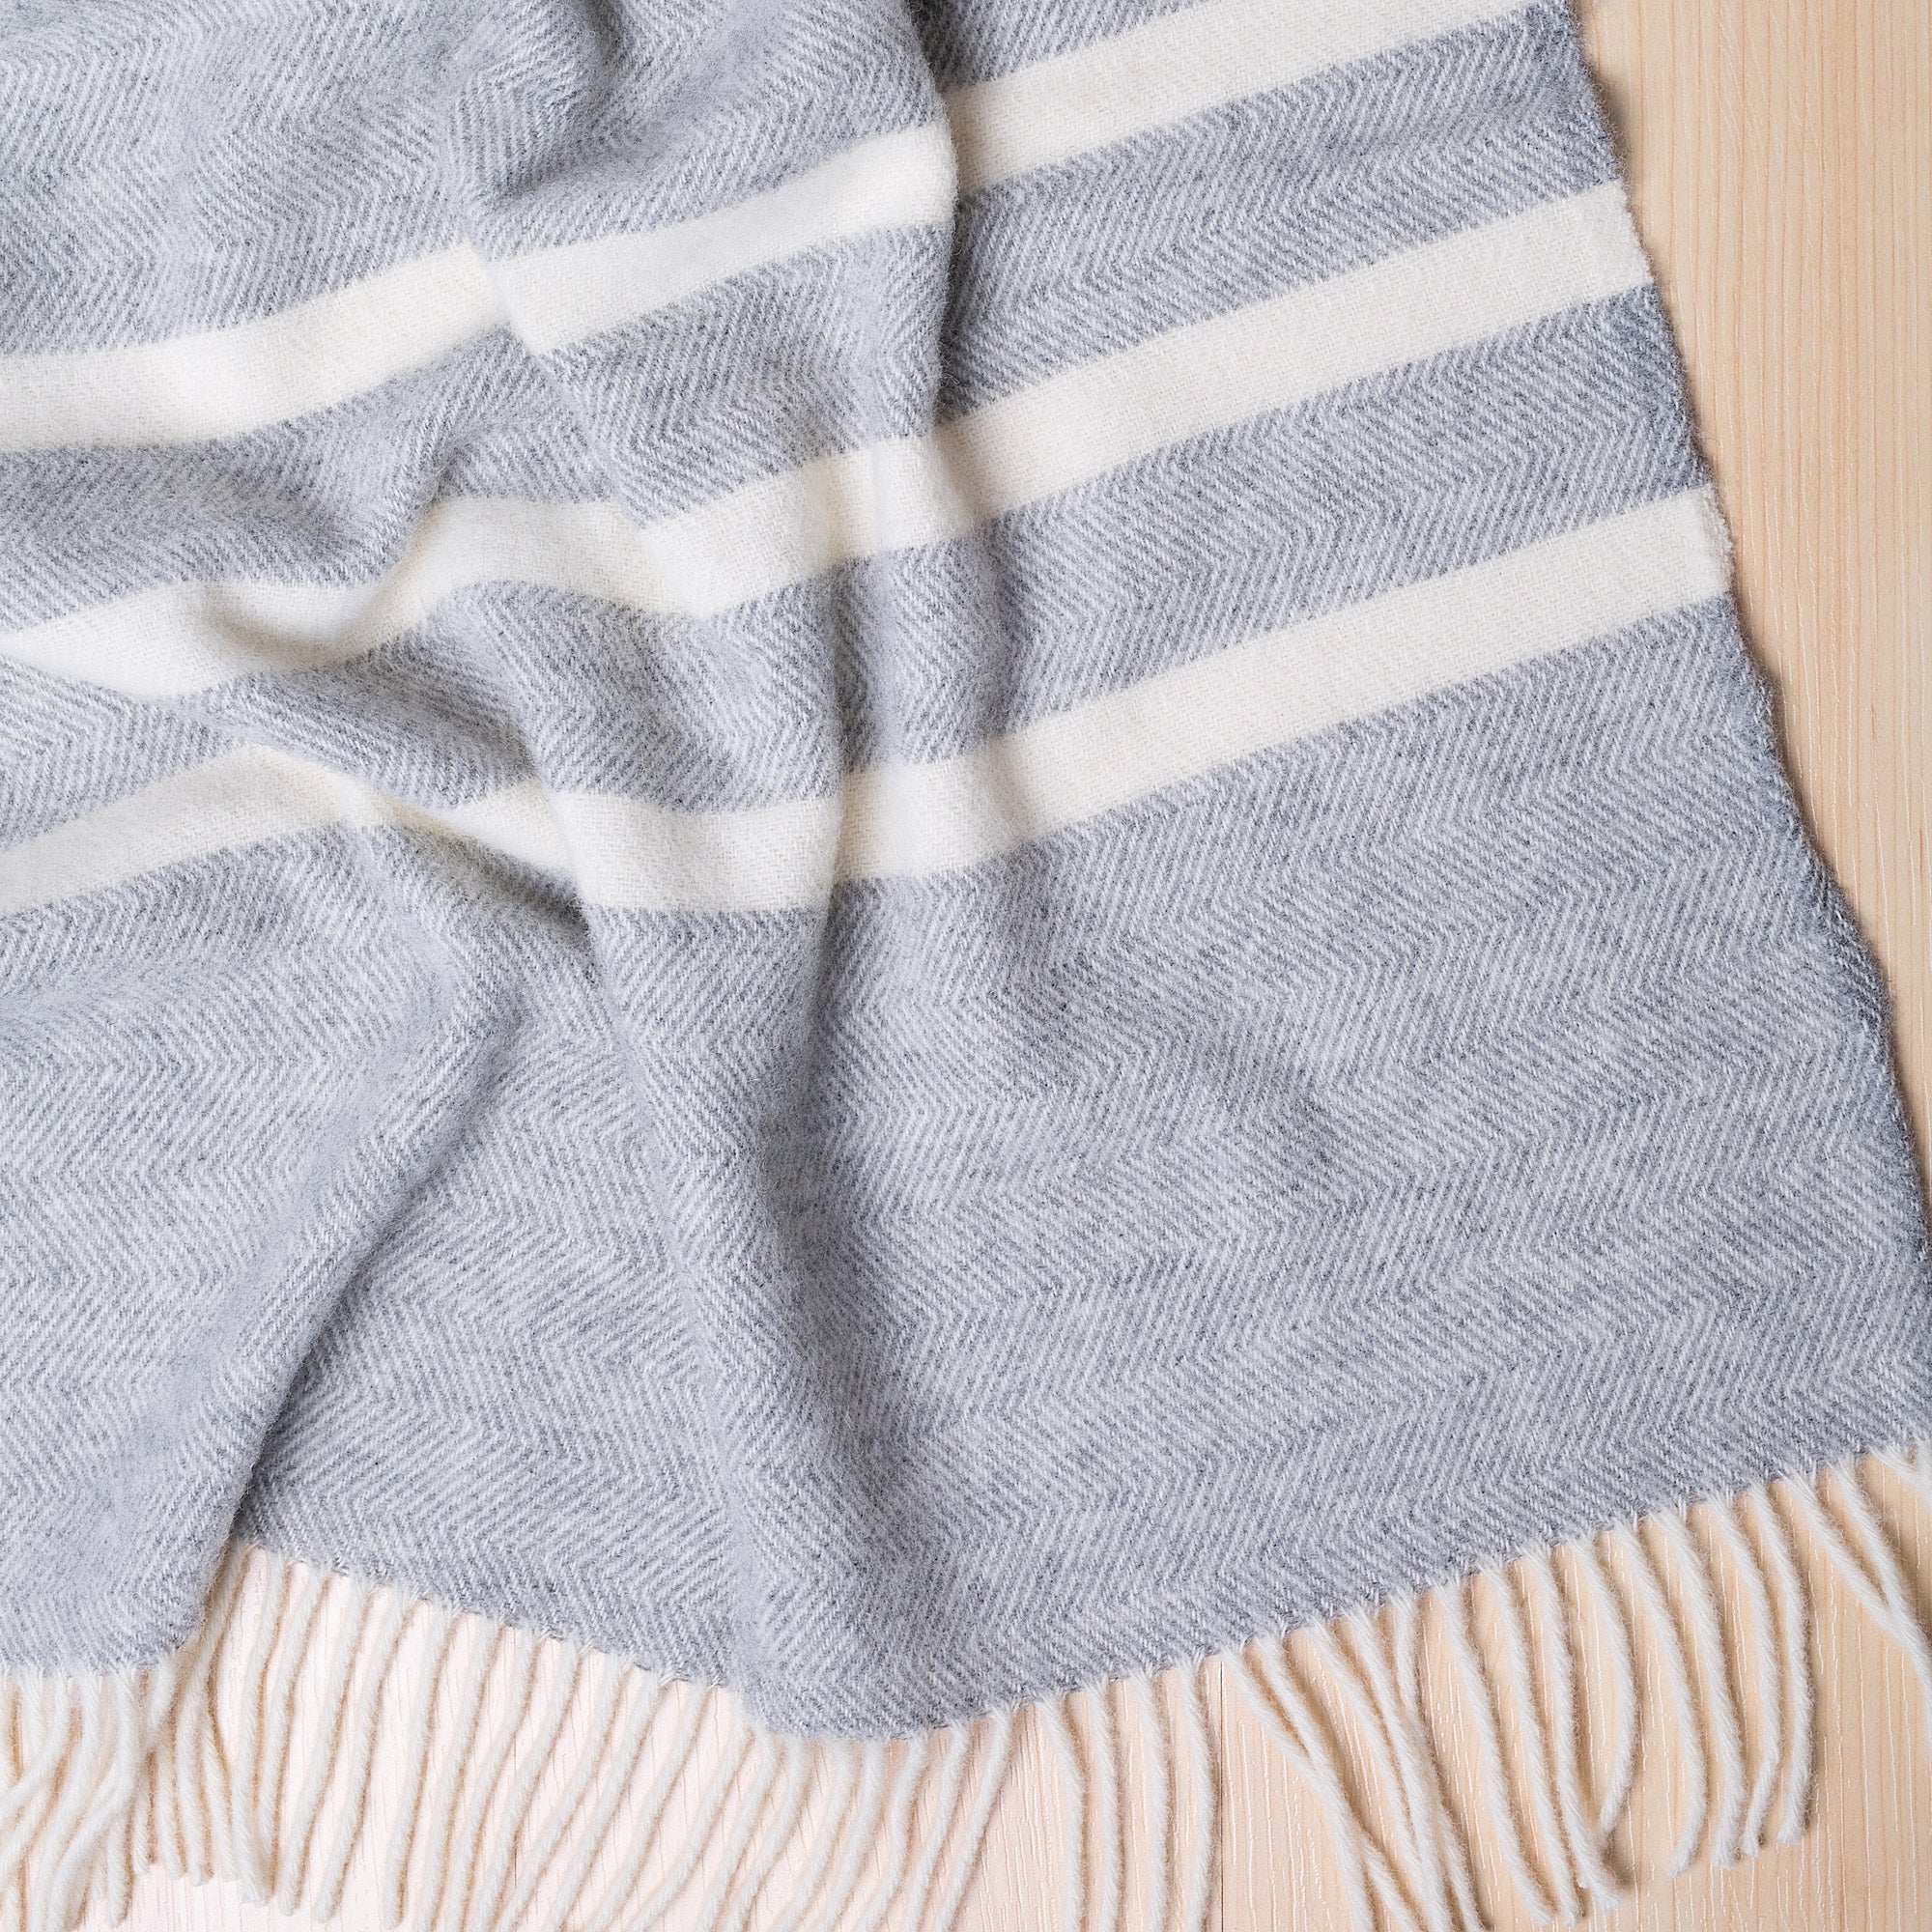 Paper Plane - NZ Lambswool Throw - Raglan Fog